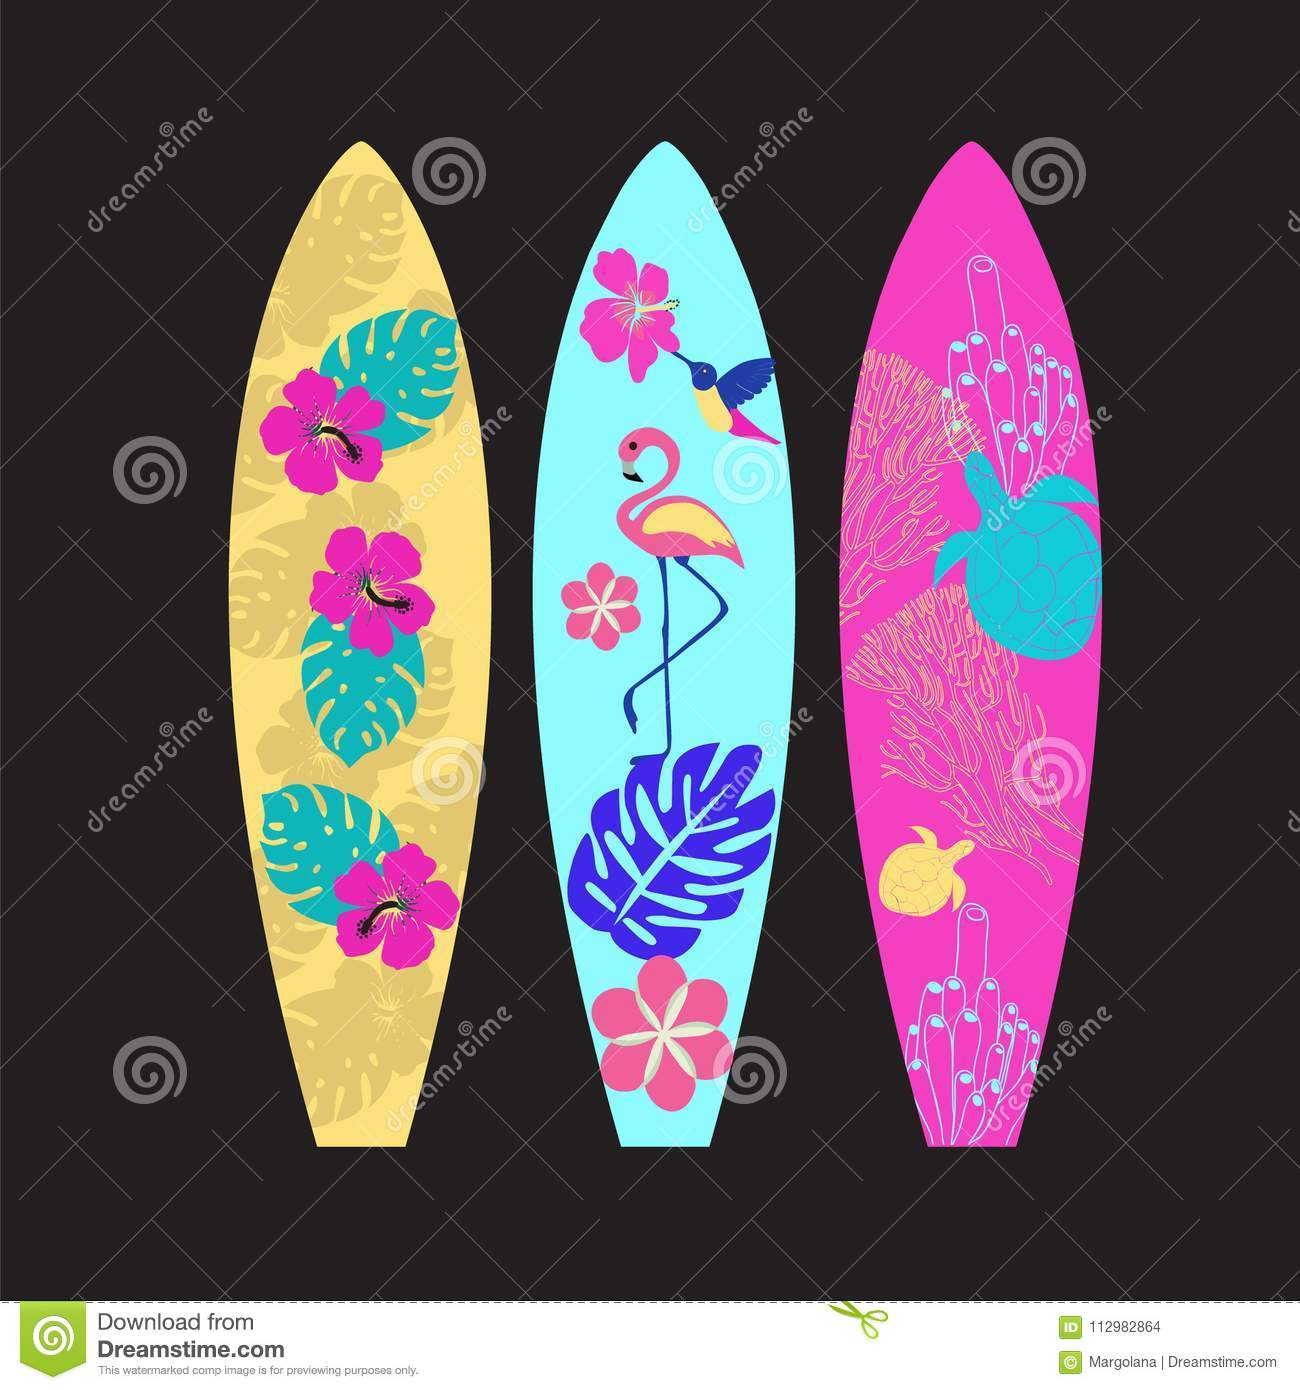 Set of Surfboards isolated on black background.